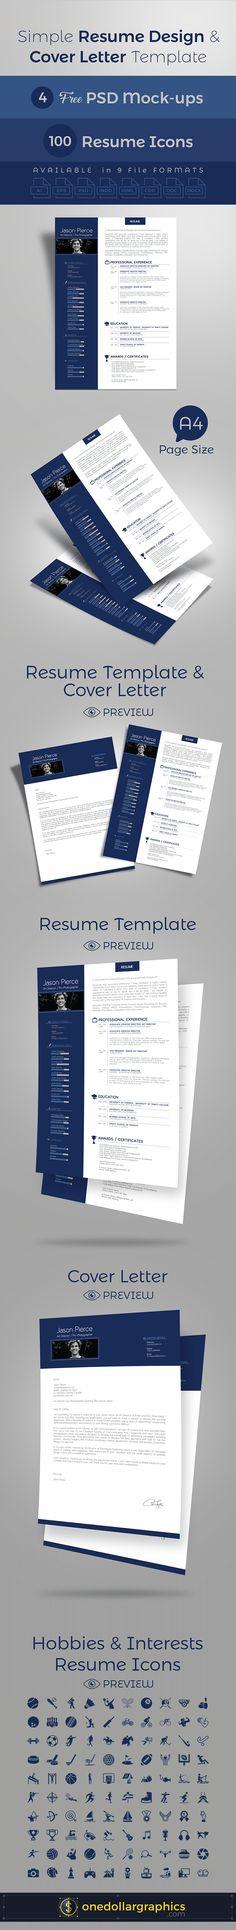 Simple Resume CV Design Cover Letter Template 4 PSD Mock Ups 100 Icons